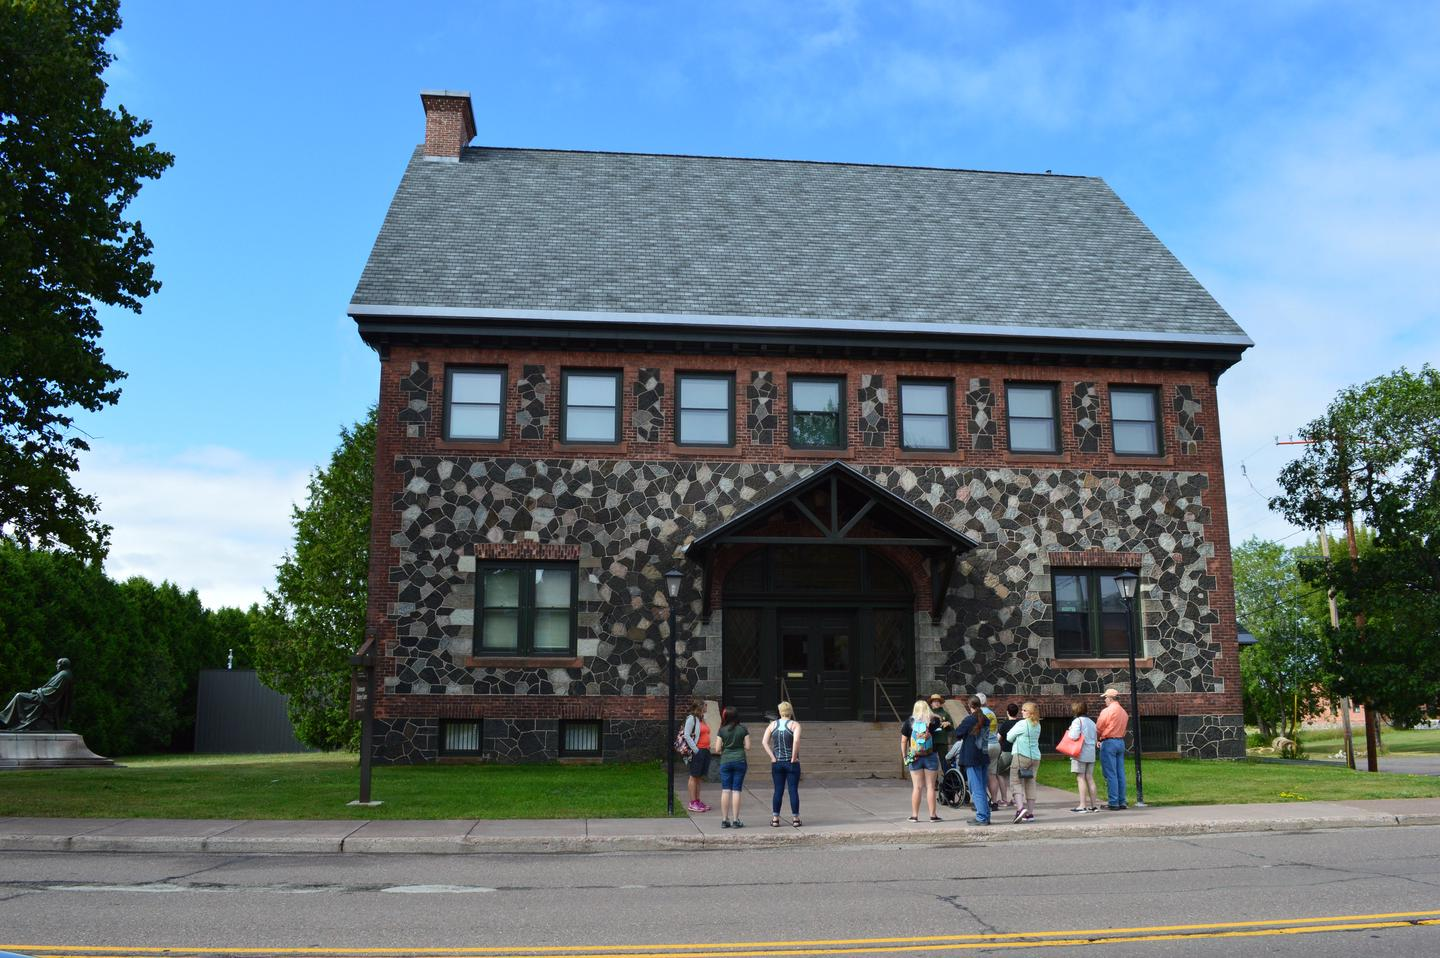 Keweenaw History CenterA ranger guided walk outside the former Calumet & Hecla Public Library, now known at the Keweenaw History Center.